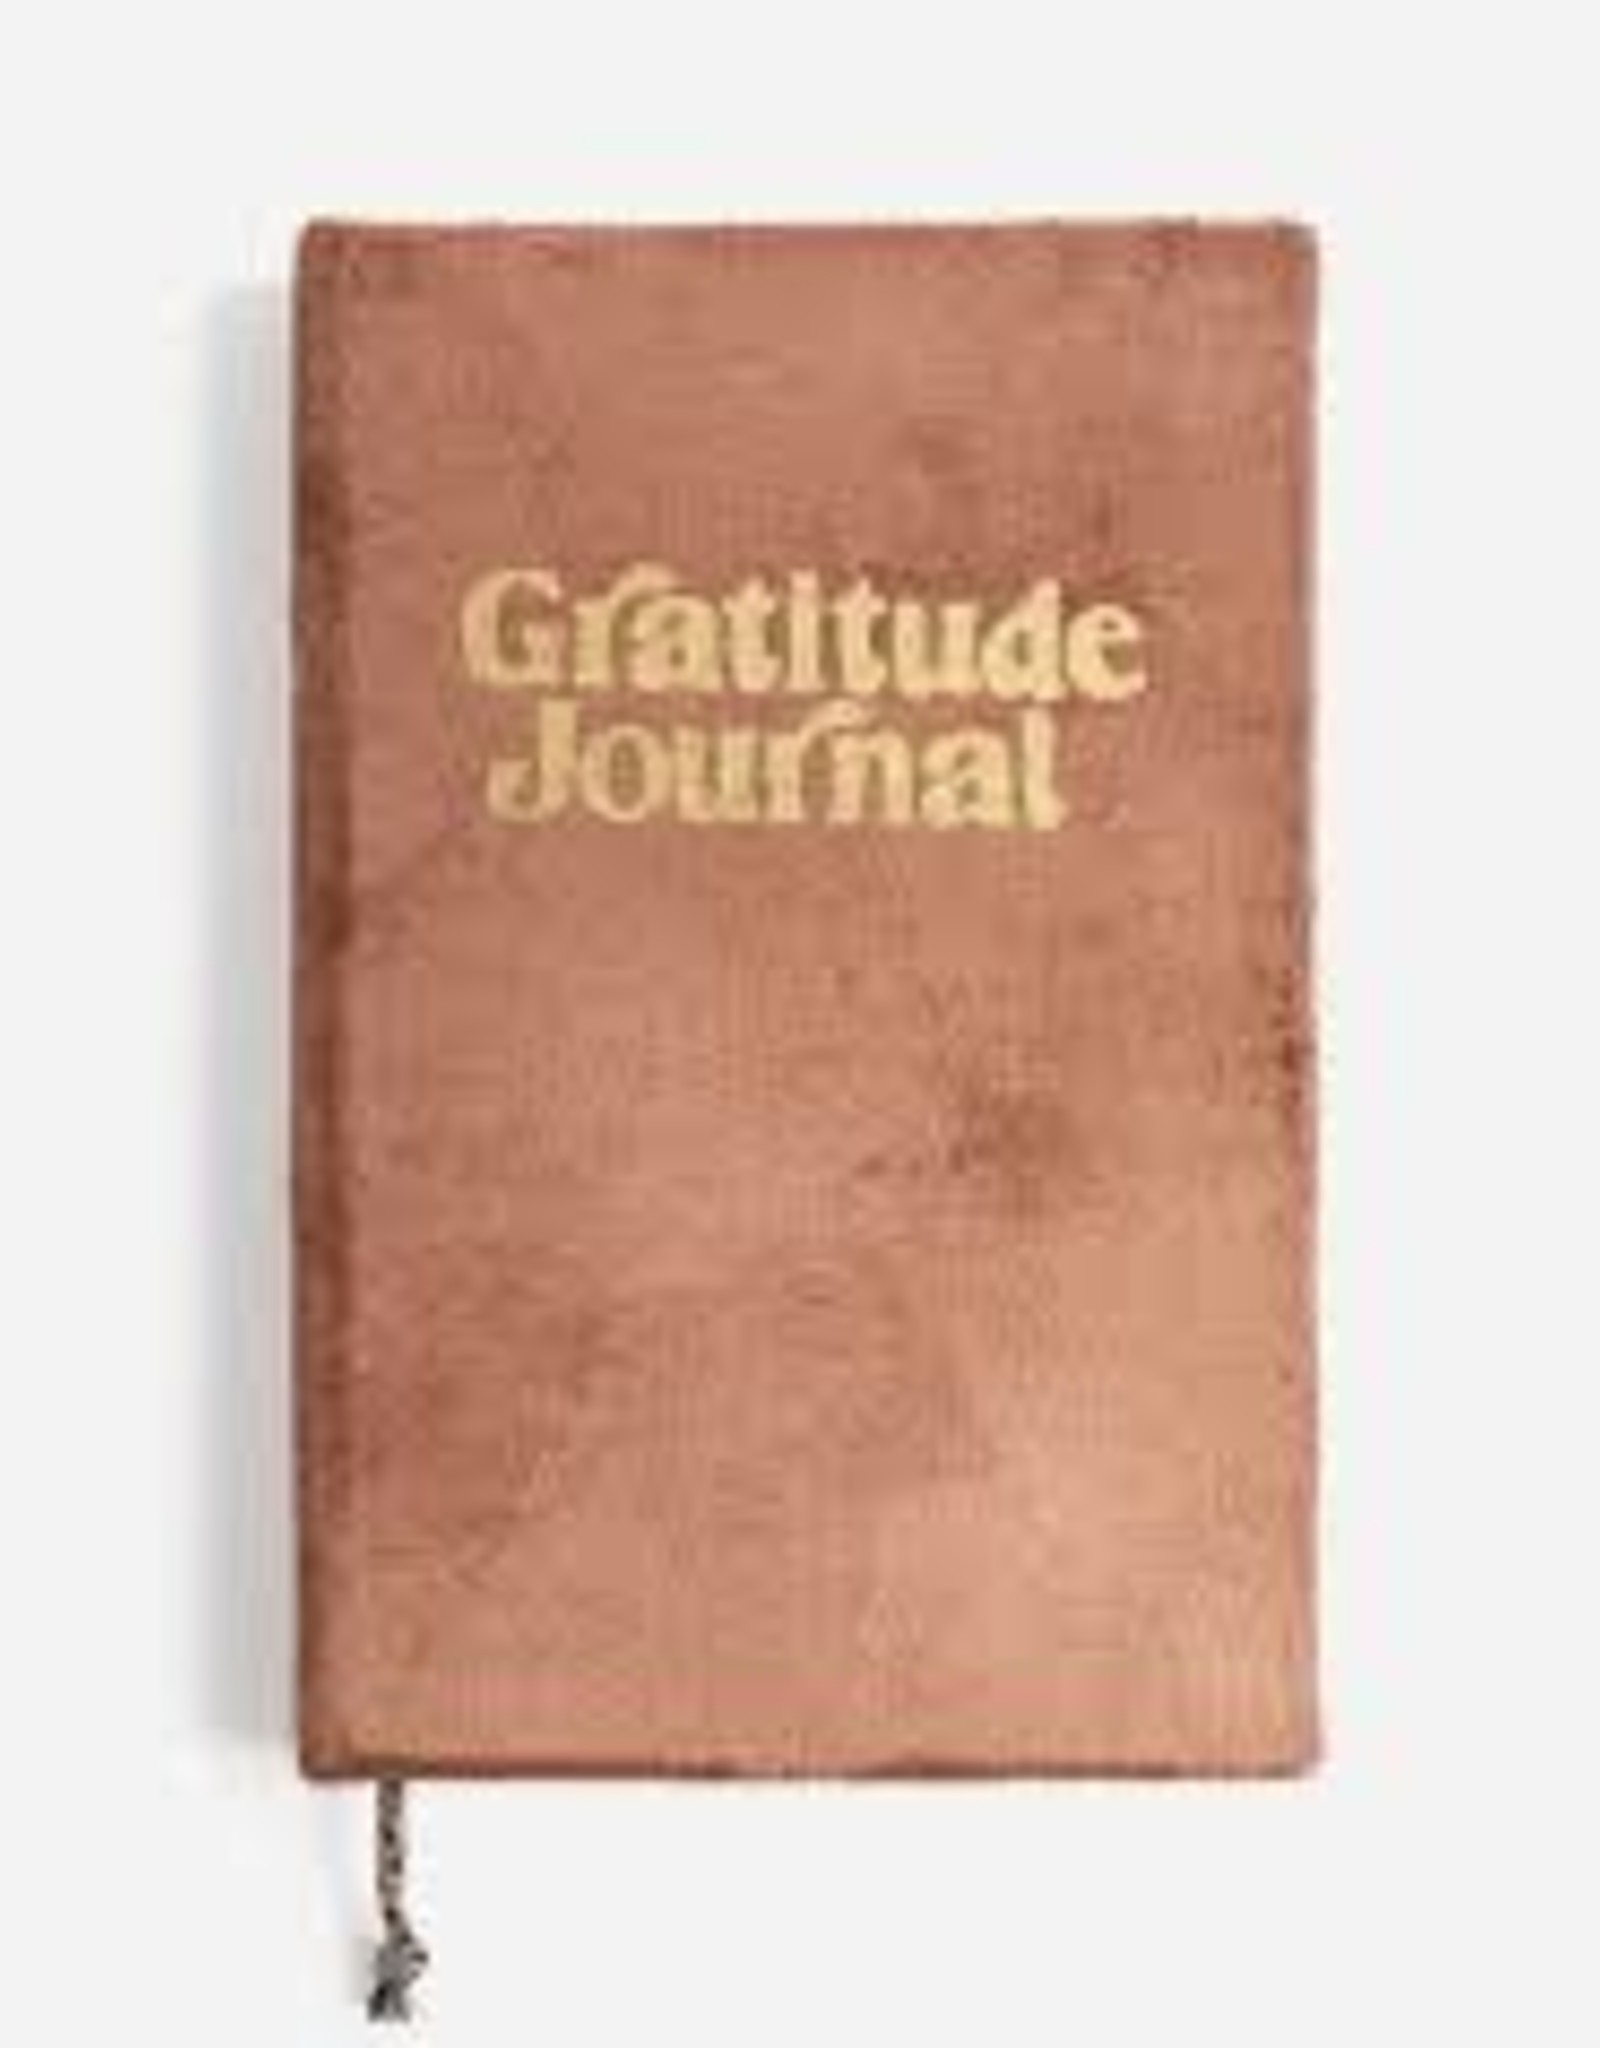 Printfresh Gratitude Journal in Blush Velvet